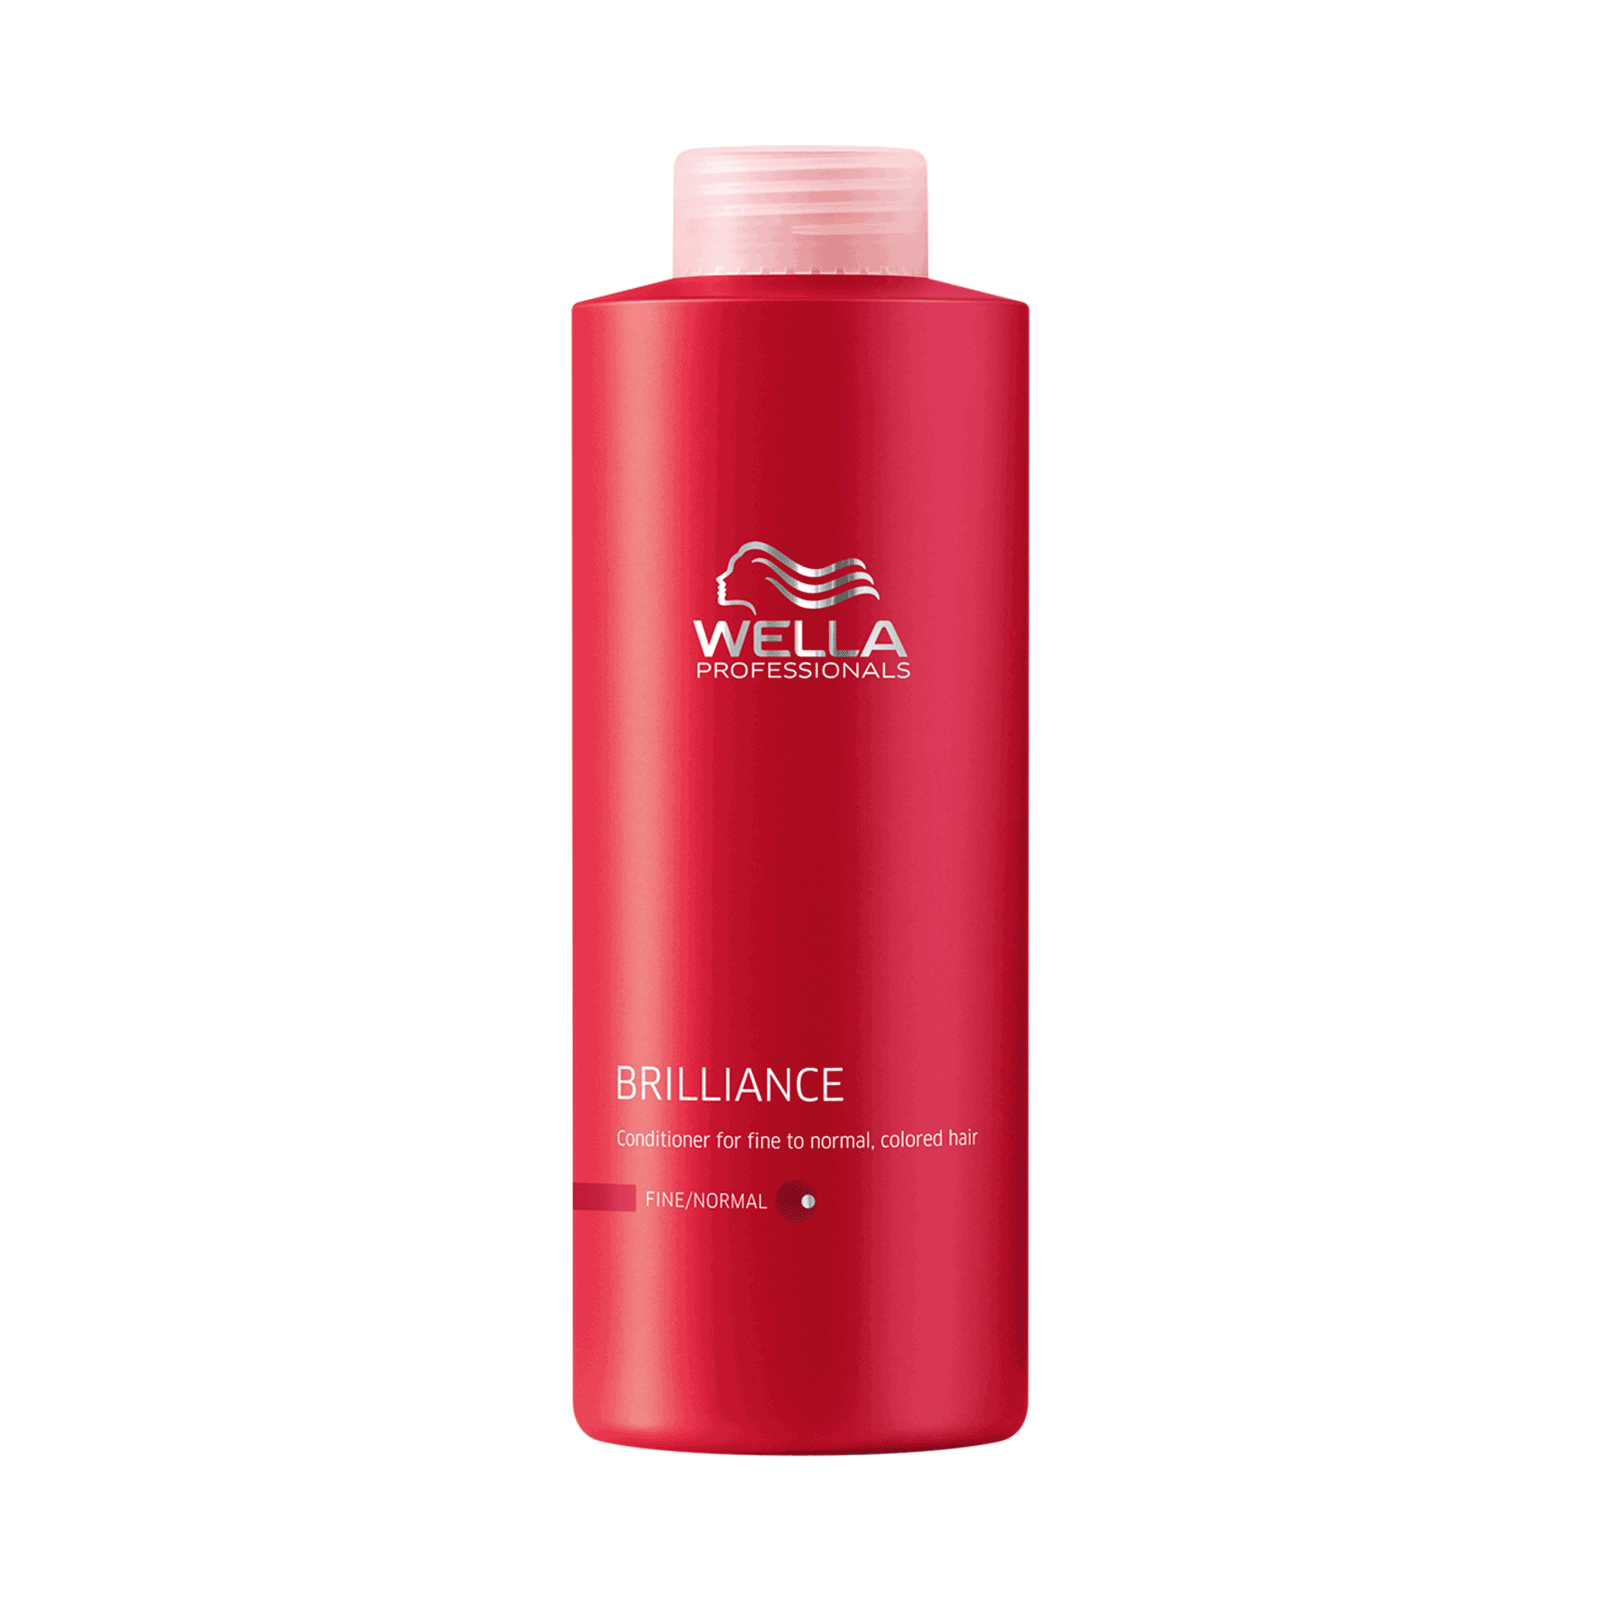 Brilliance Conditioner for Fine/Normal Hair